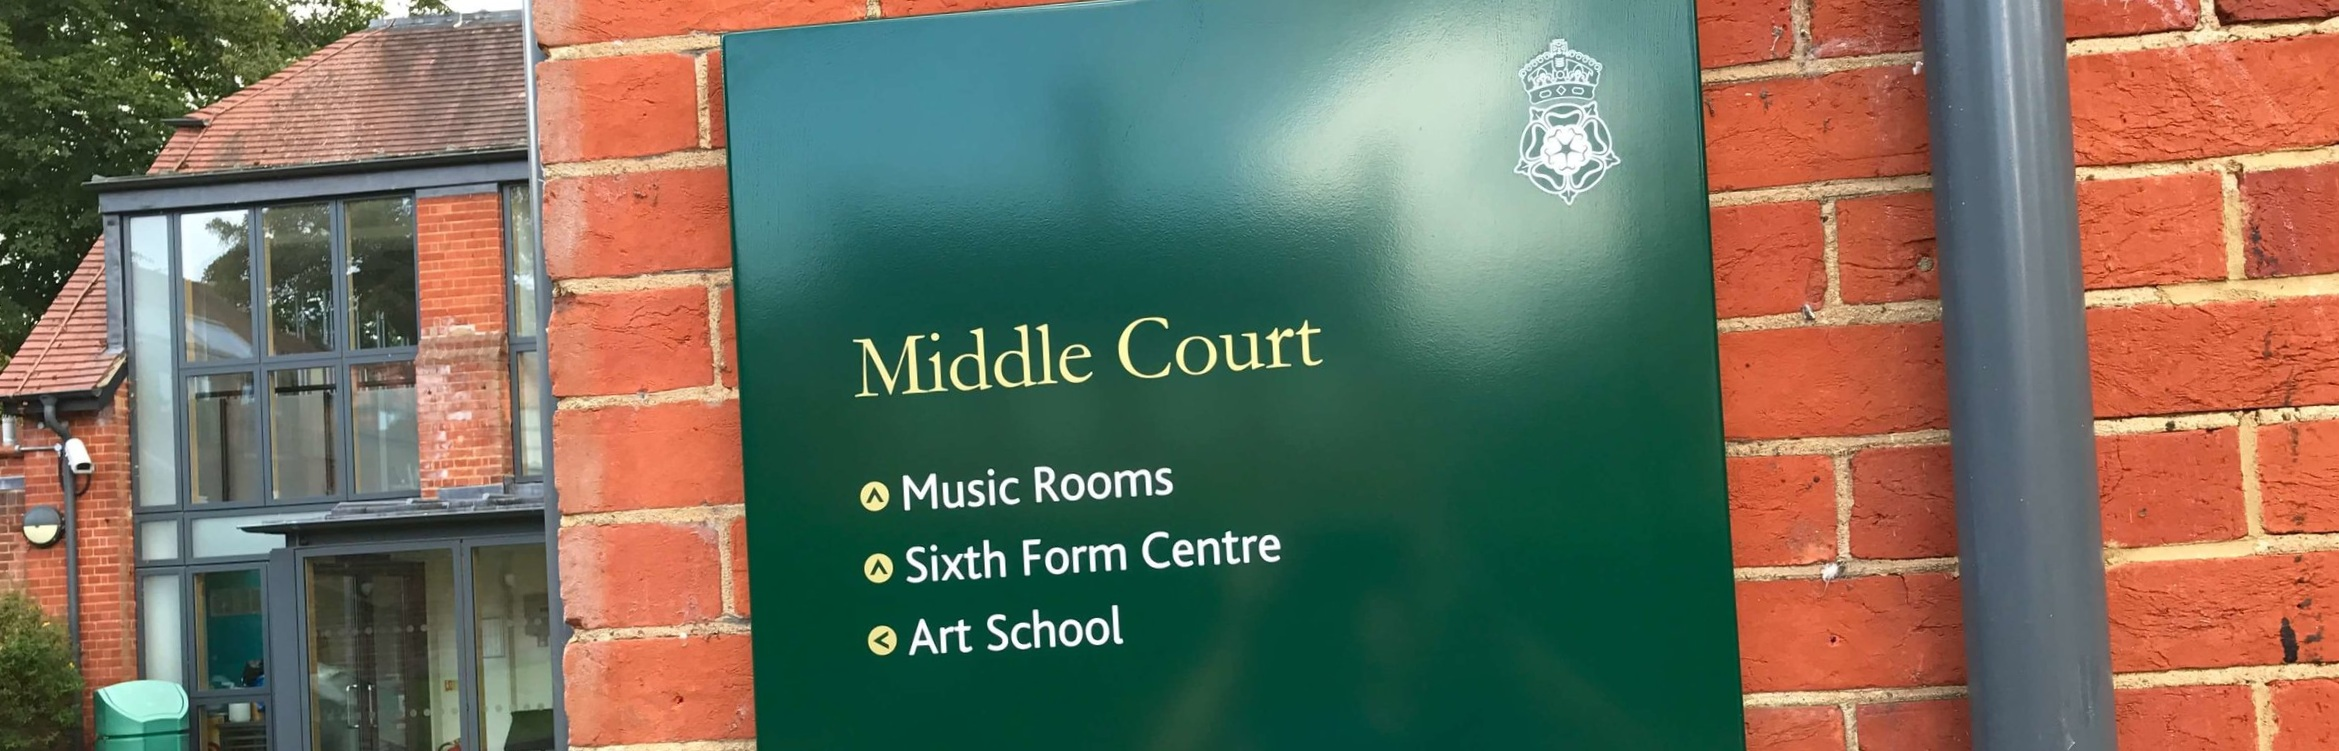 royal_grammar_school_wayfinding_sign_04.jpg